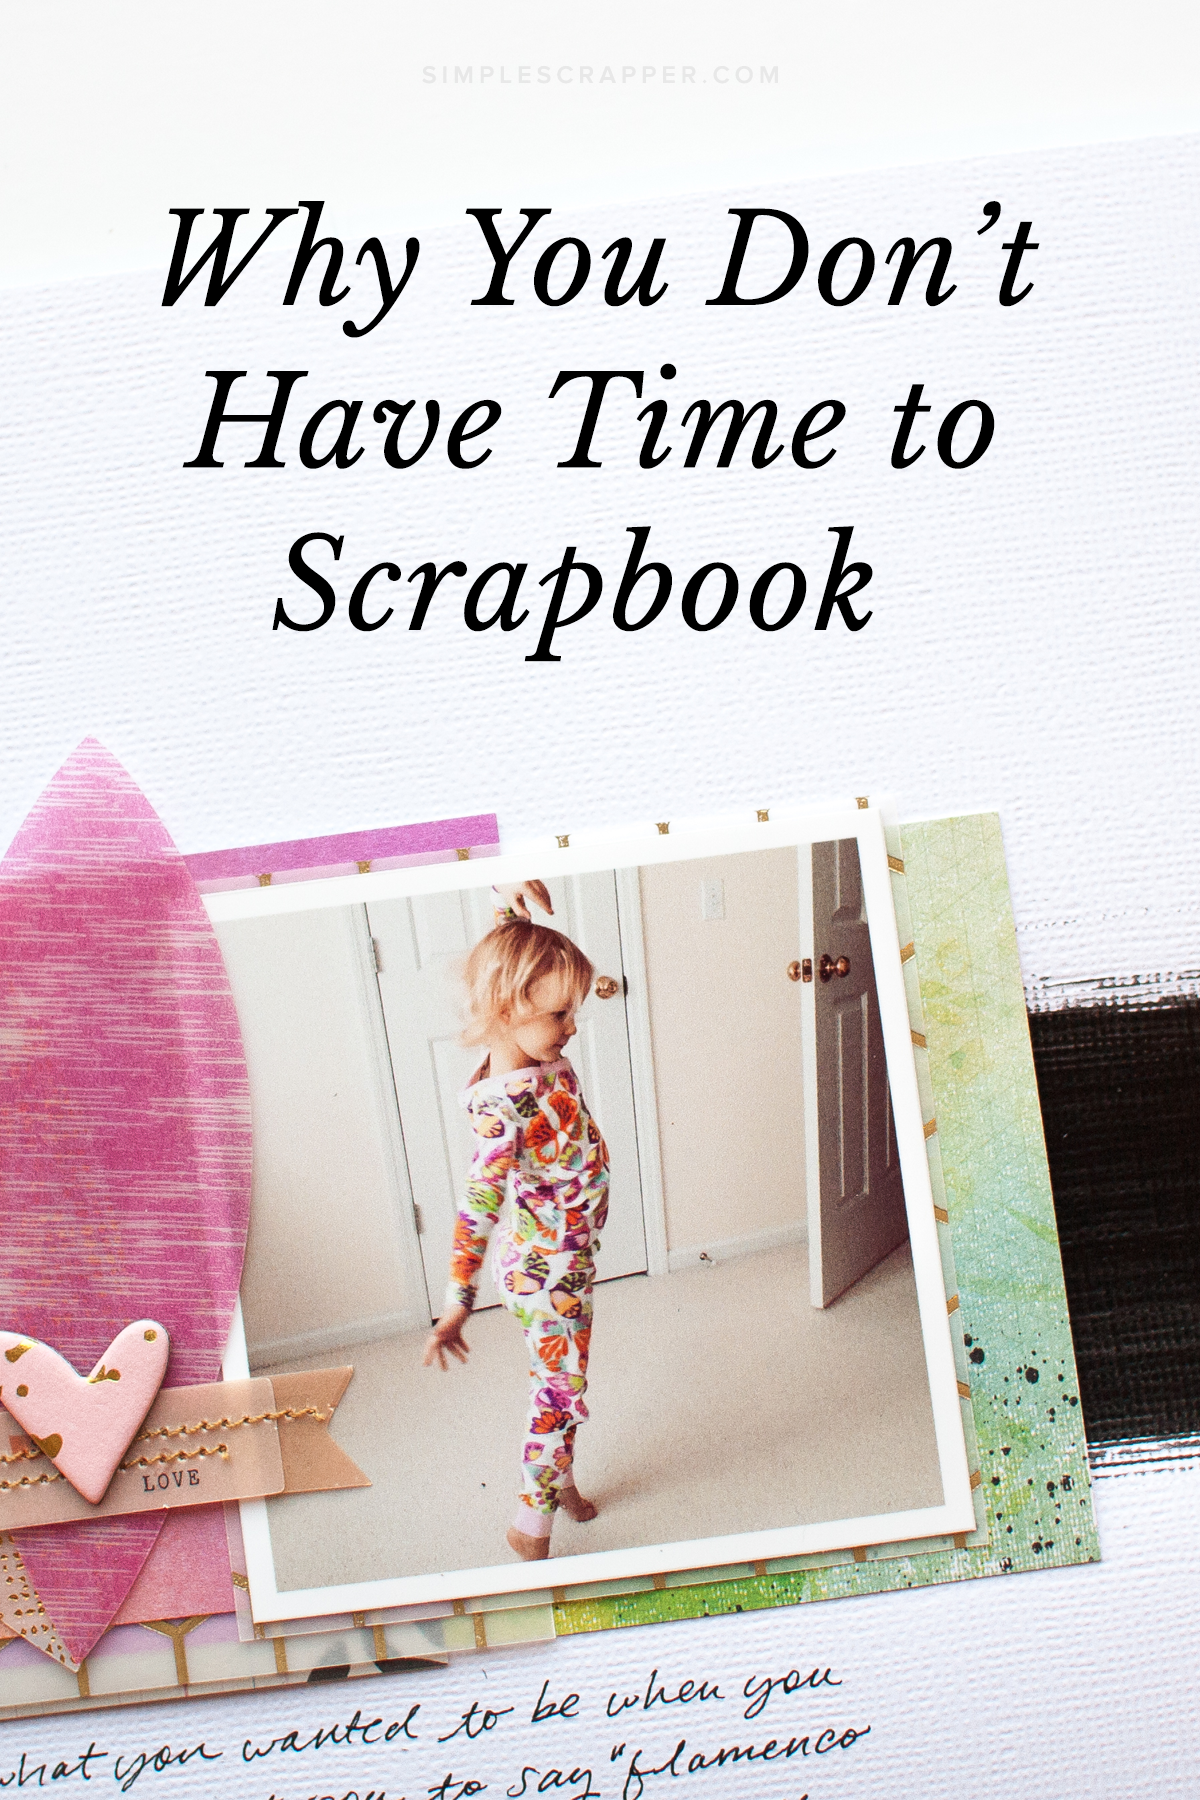 This is Why You Feel Like There's No Time to Scrapbook